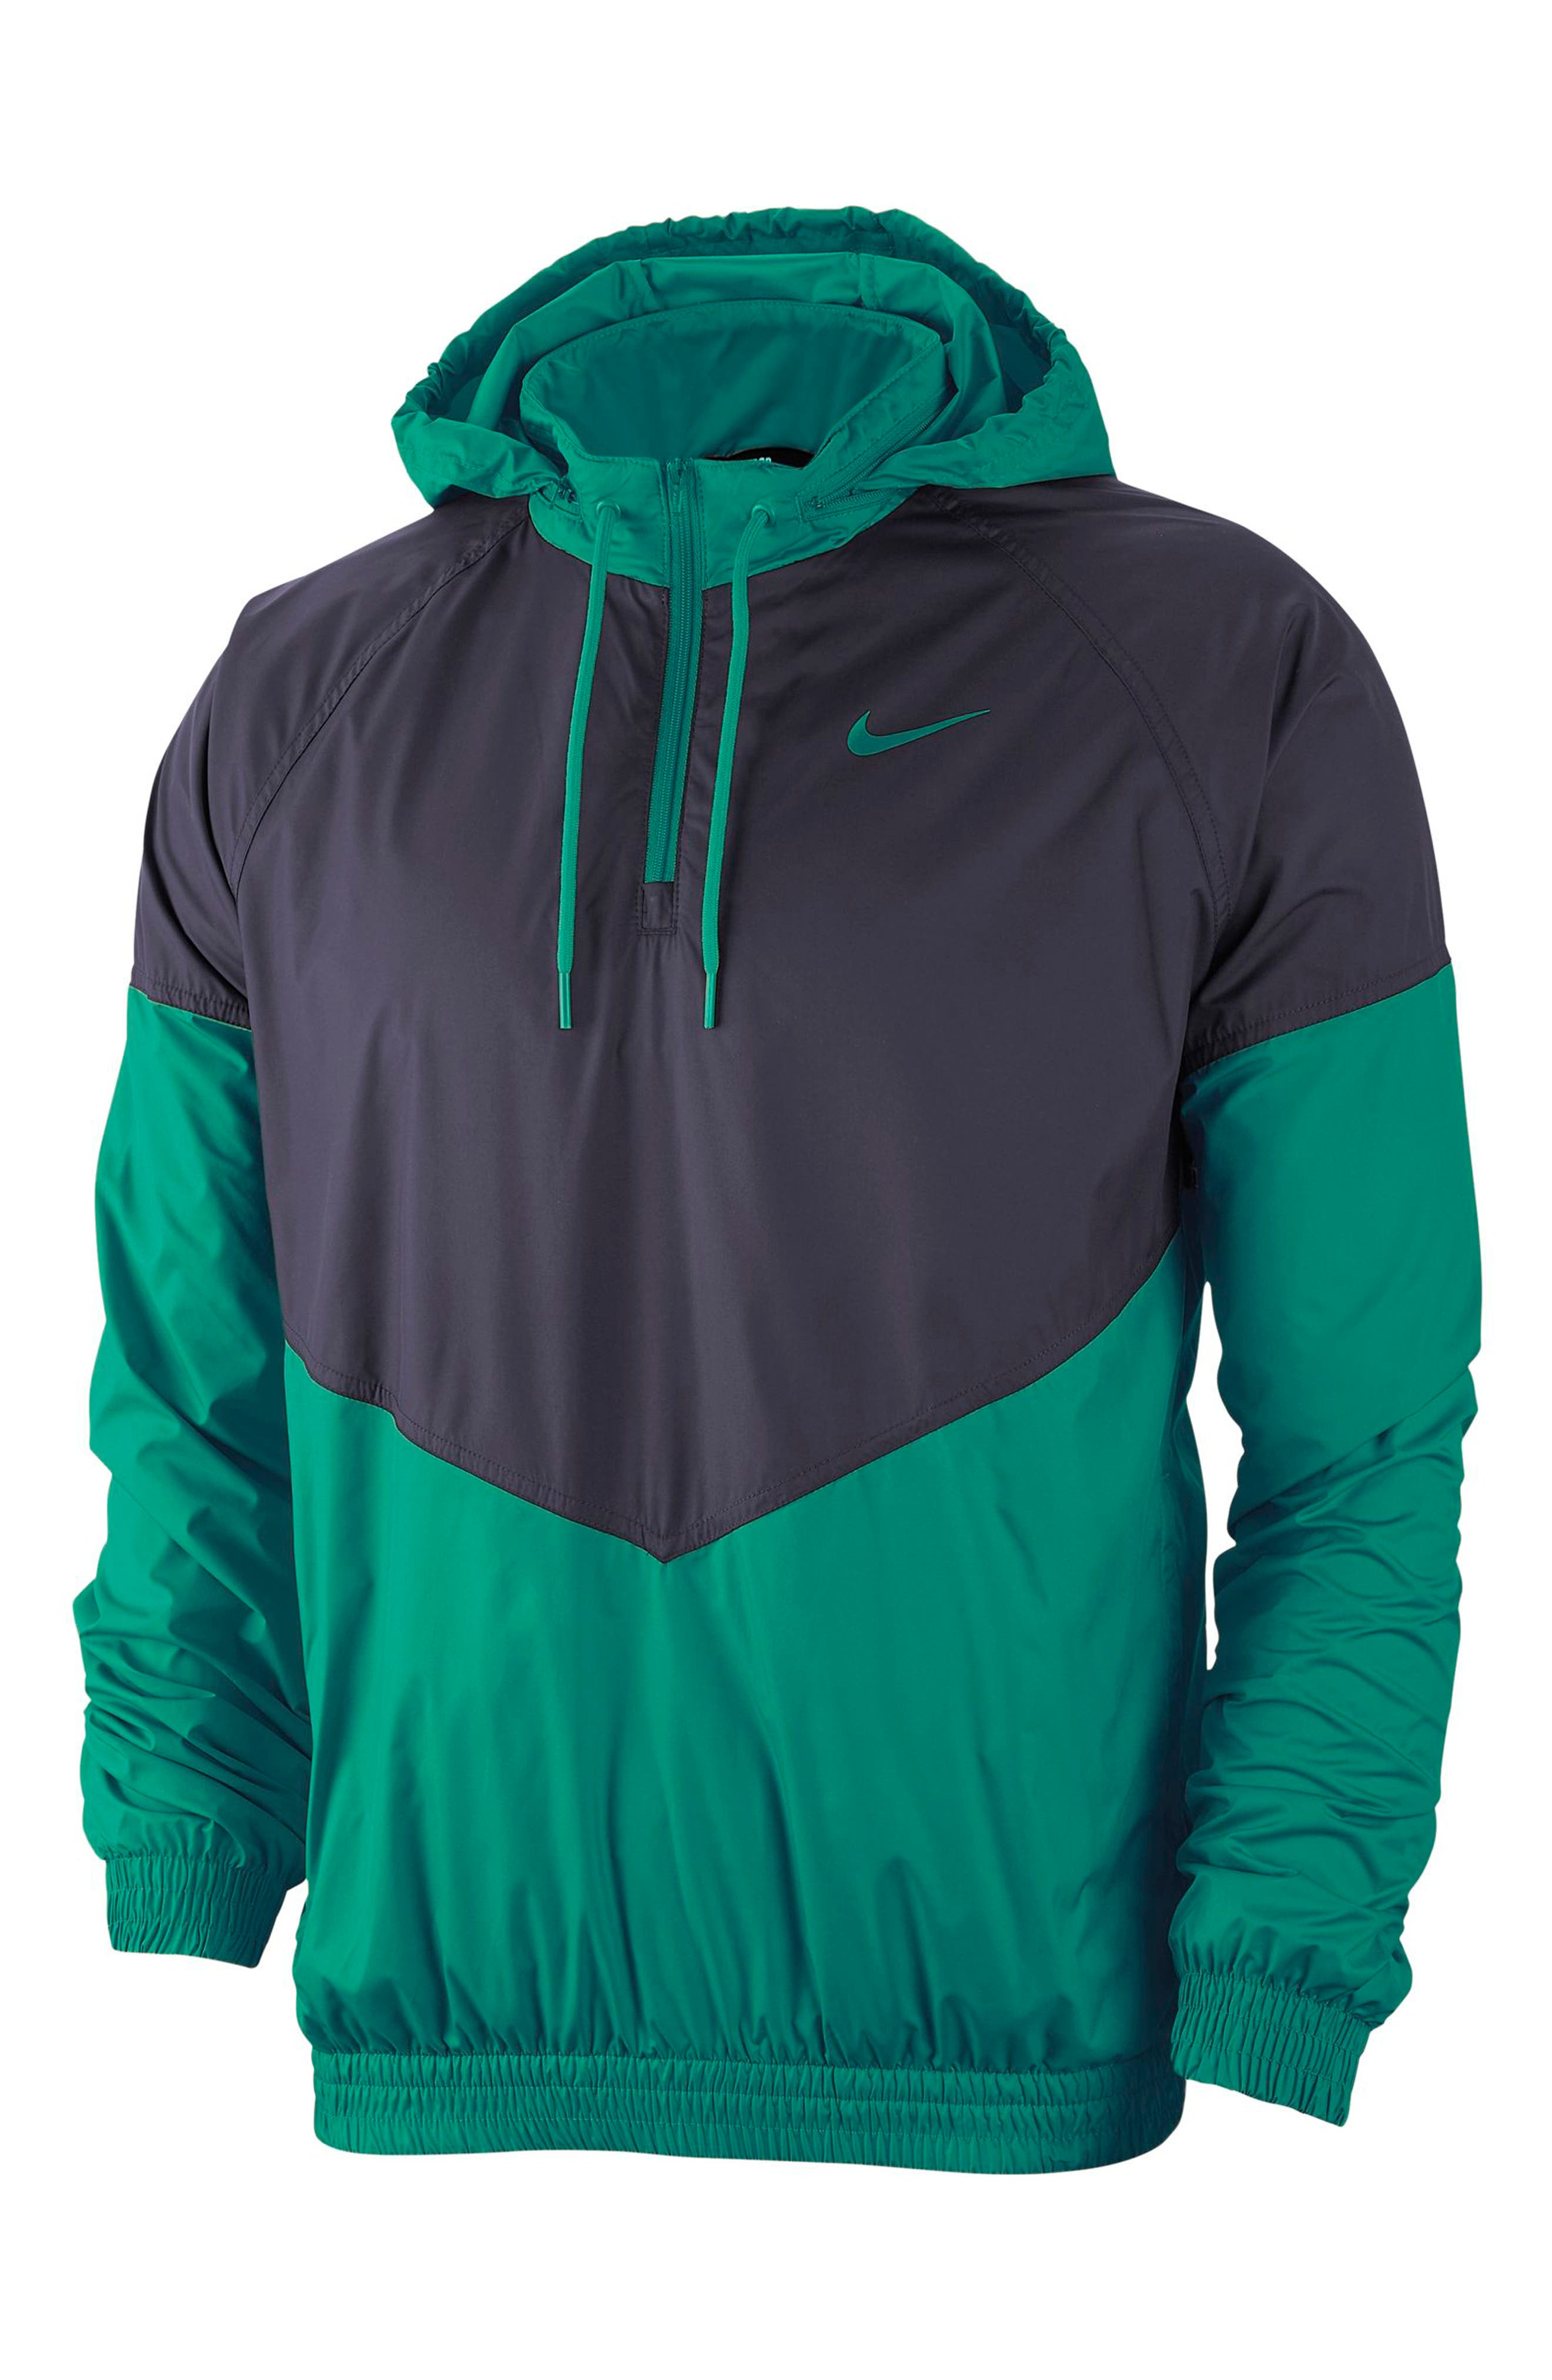 Don\'t let the weather keep you from getting after it in this windbreaker with throwback color-block styling in Nike Shield fabric that stops the elements. Style Name: Nike Sb Shield Quarter Zip Jacket. Style Number: 5850624. Available in stores.